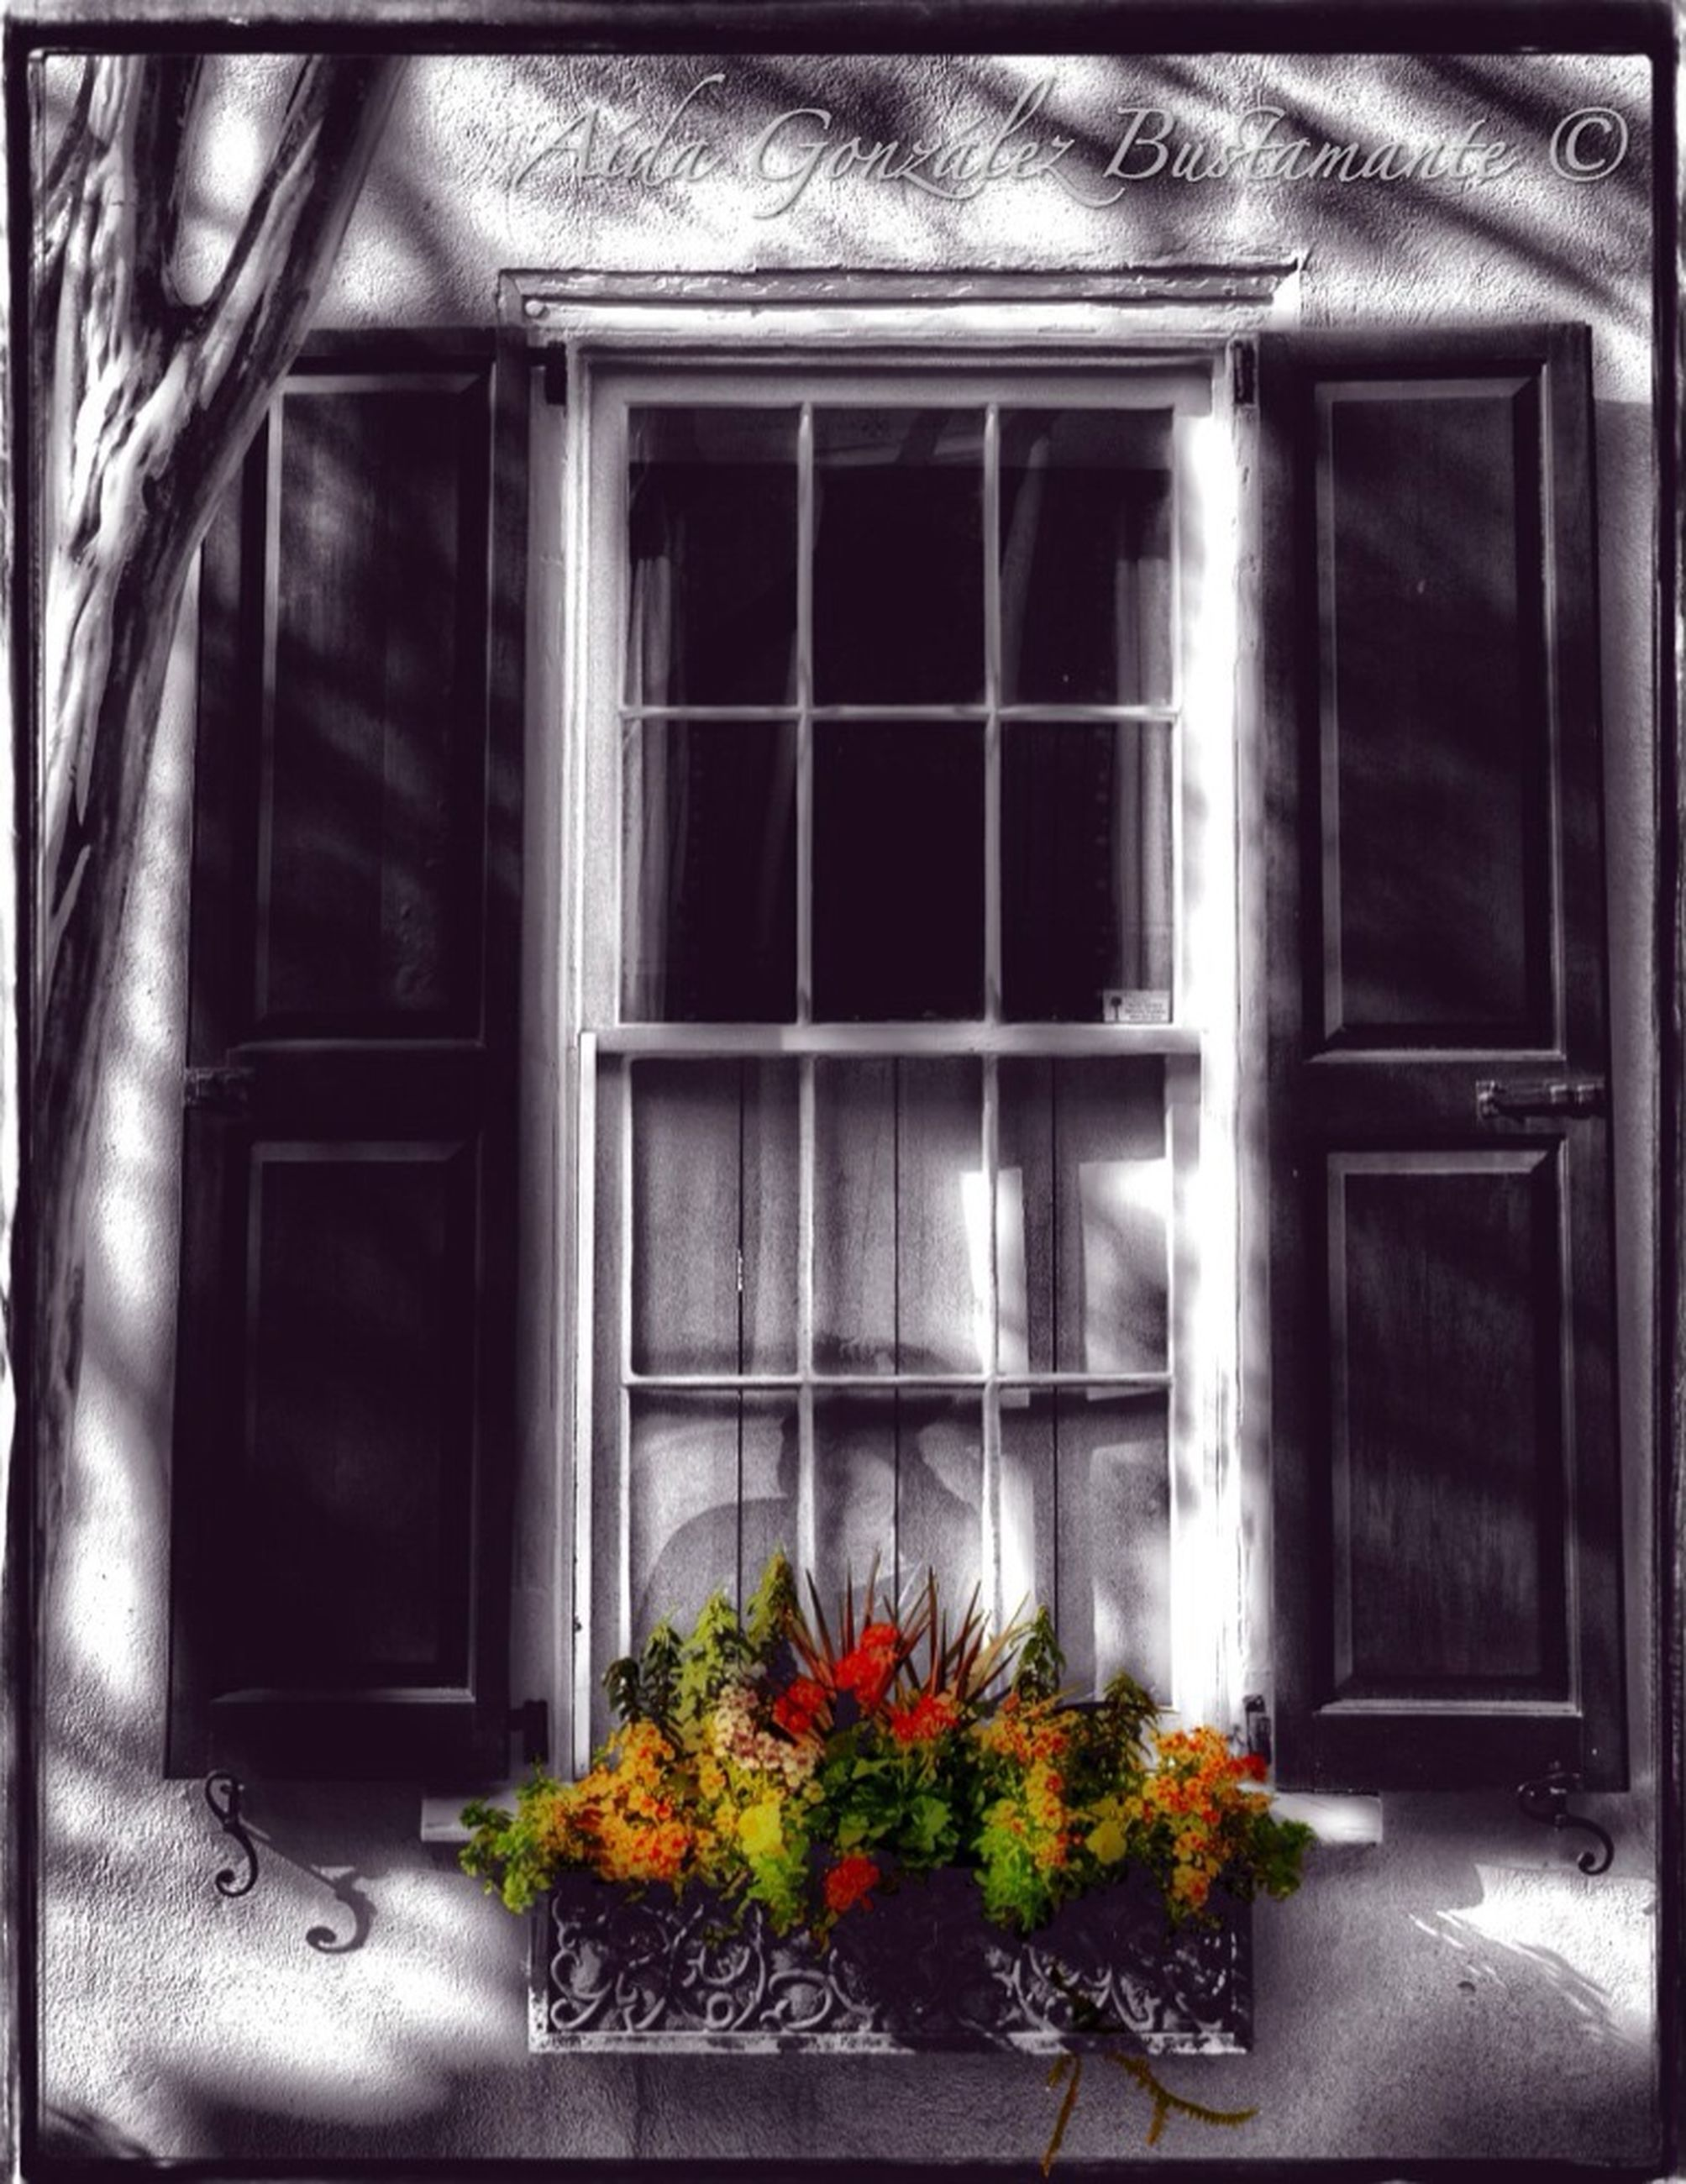 window, house, door, transfer print, built structure, closed, indoors, architecture, auto post production filter, building exterior, potted plant, wood - material, plant, window sill, glass - material, flower, open, entrance, home interior, no people